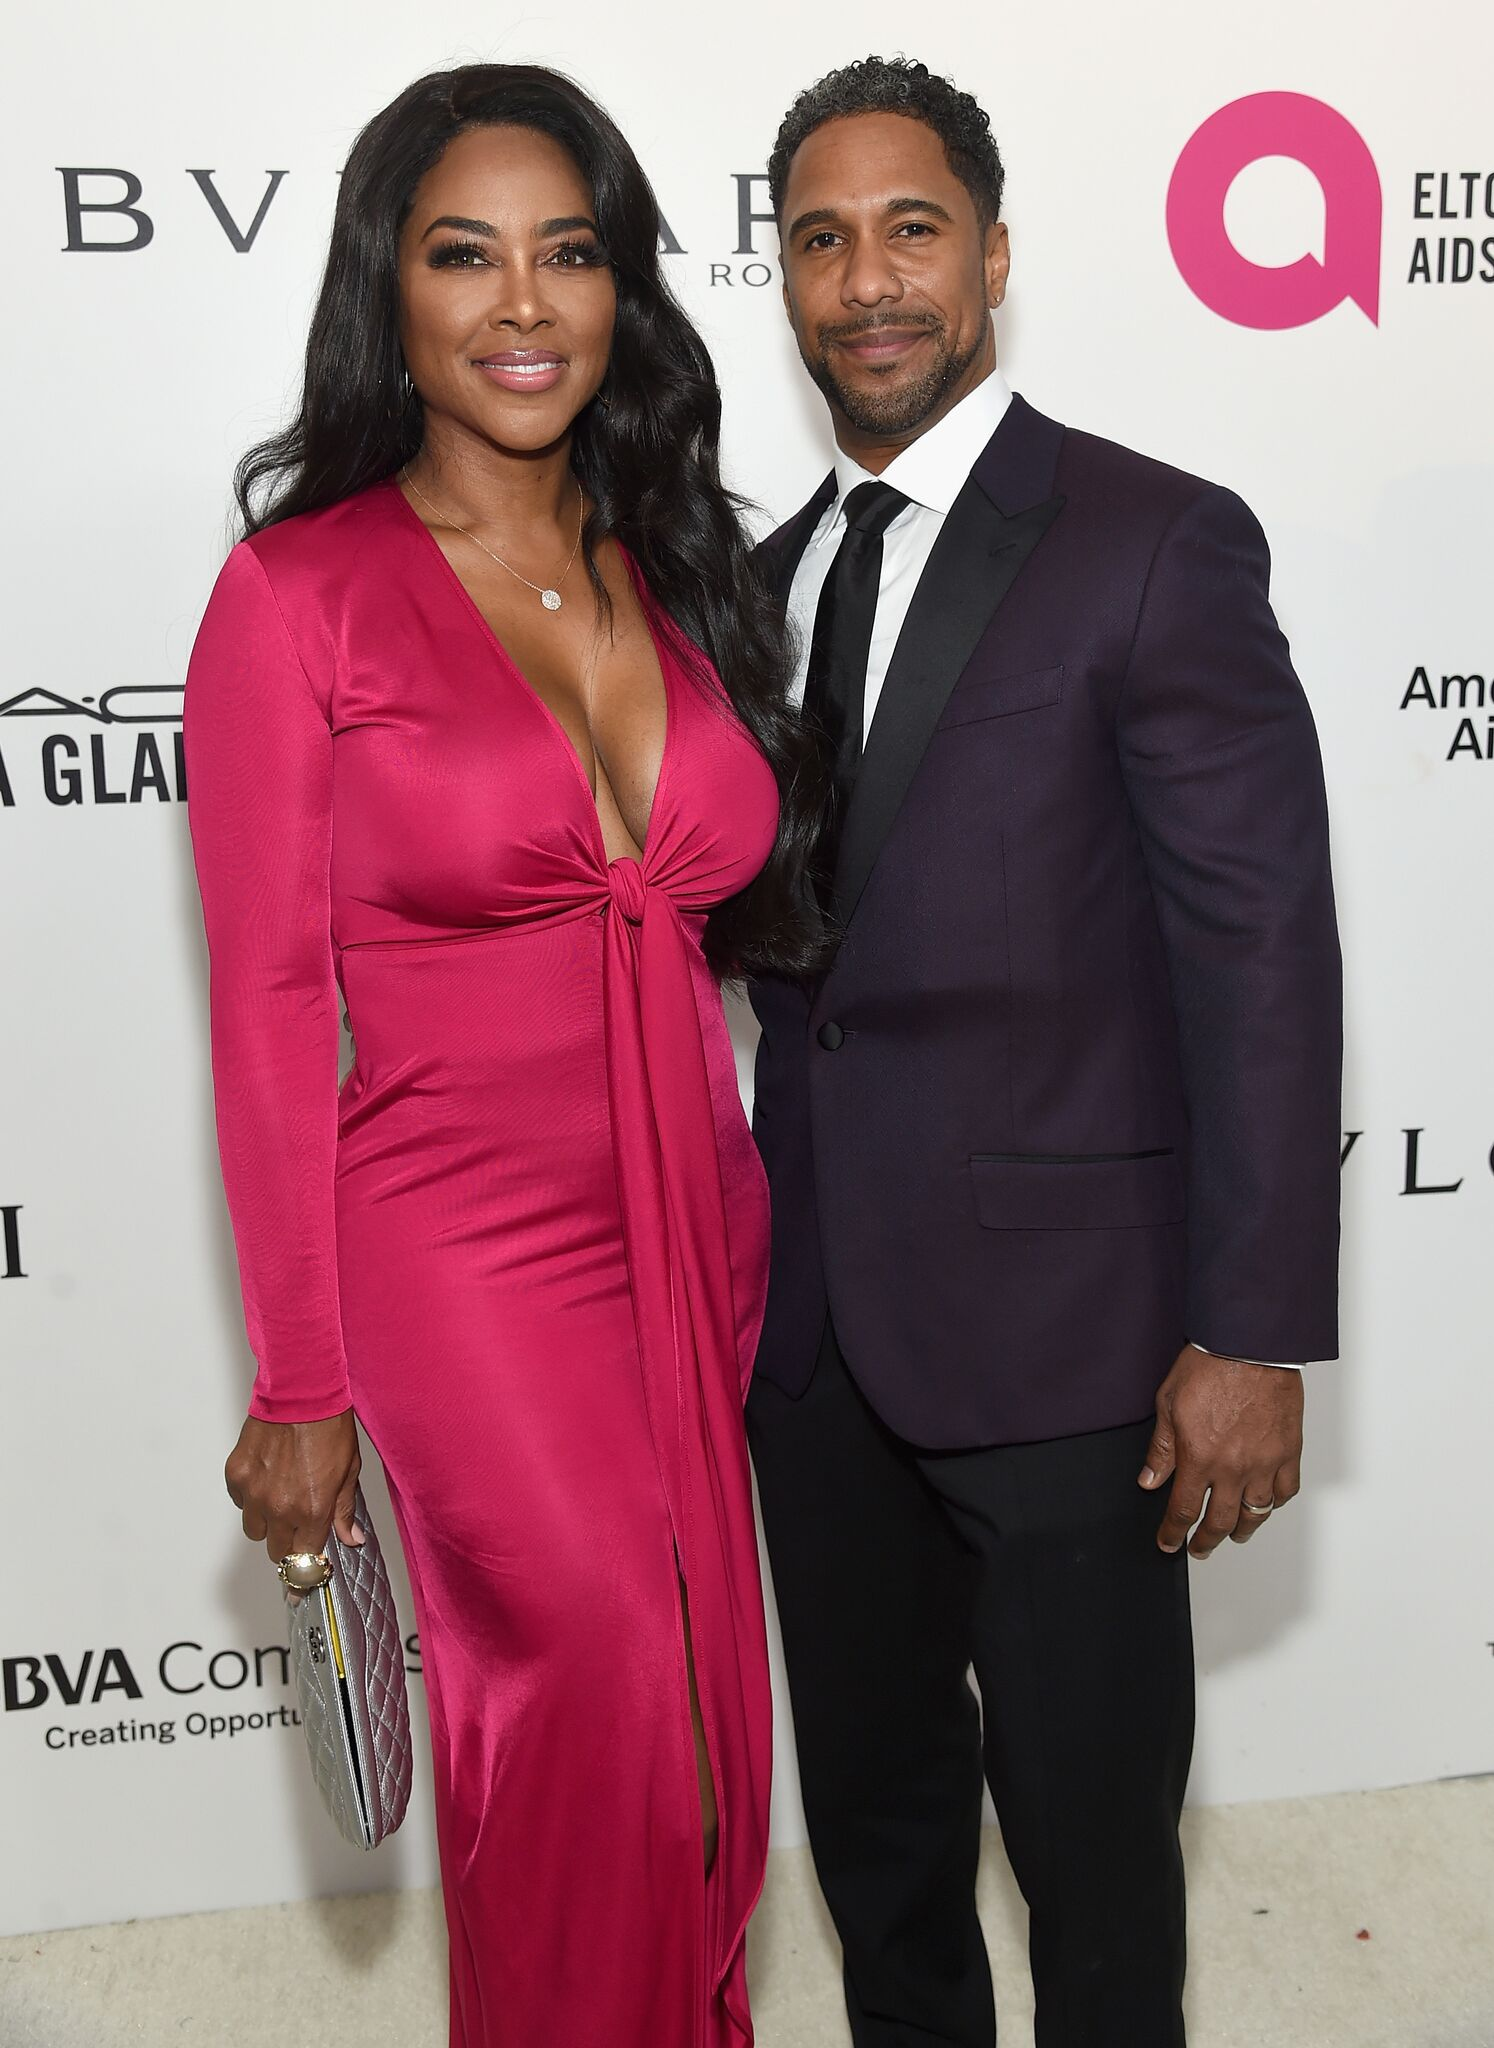 Kenya Moore and Marc Daly attend the 26th annual Elton John AIDS Foundation's Academy Awards Viewing Party in 2018. | Source: Getty Images